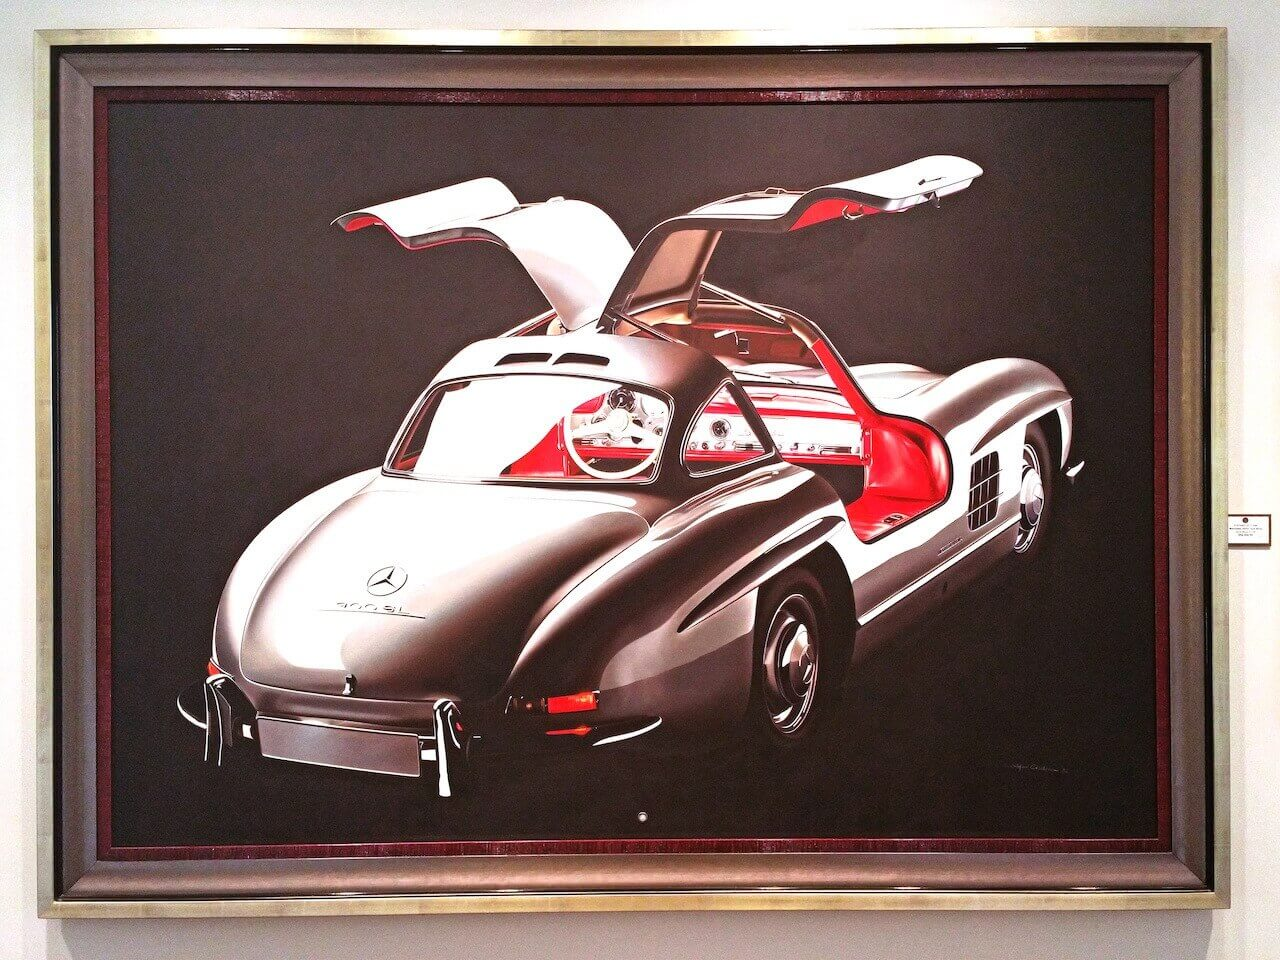 """Mercedes 300SL Gull Wing"" in oil on wood by Stefano Cecchini"